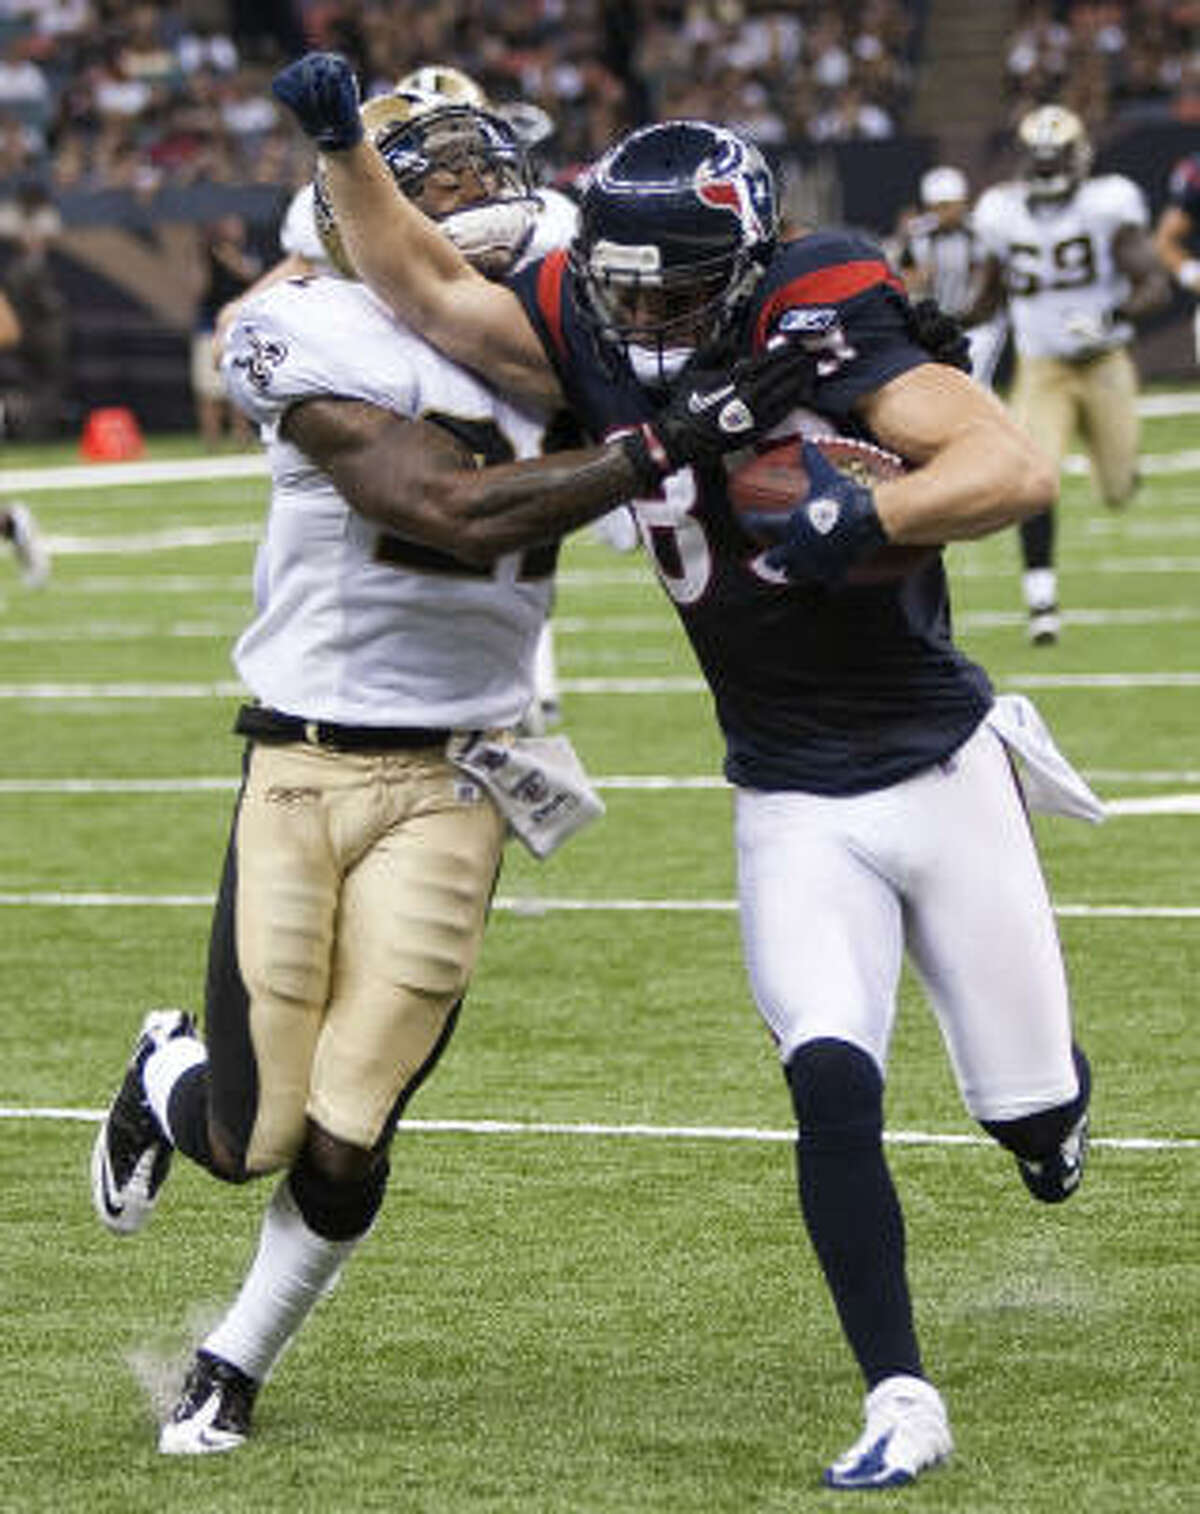 Texans receiver David Anderson tries to fight off Saints safety Chip Vaughn after making a catch during the third quarter. Anderson had three catches for 61 yards.